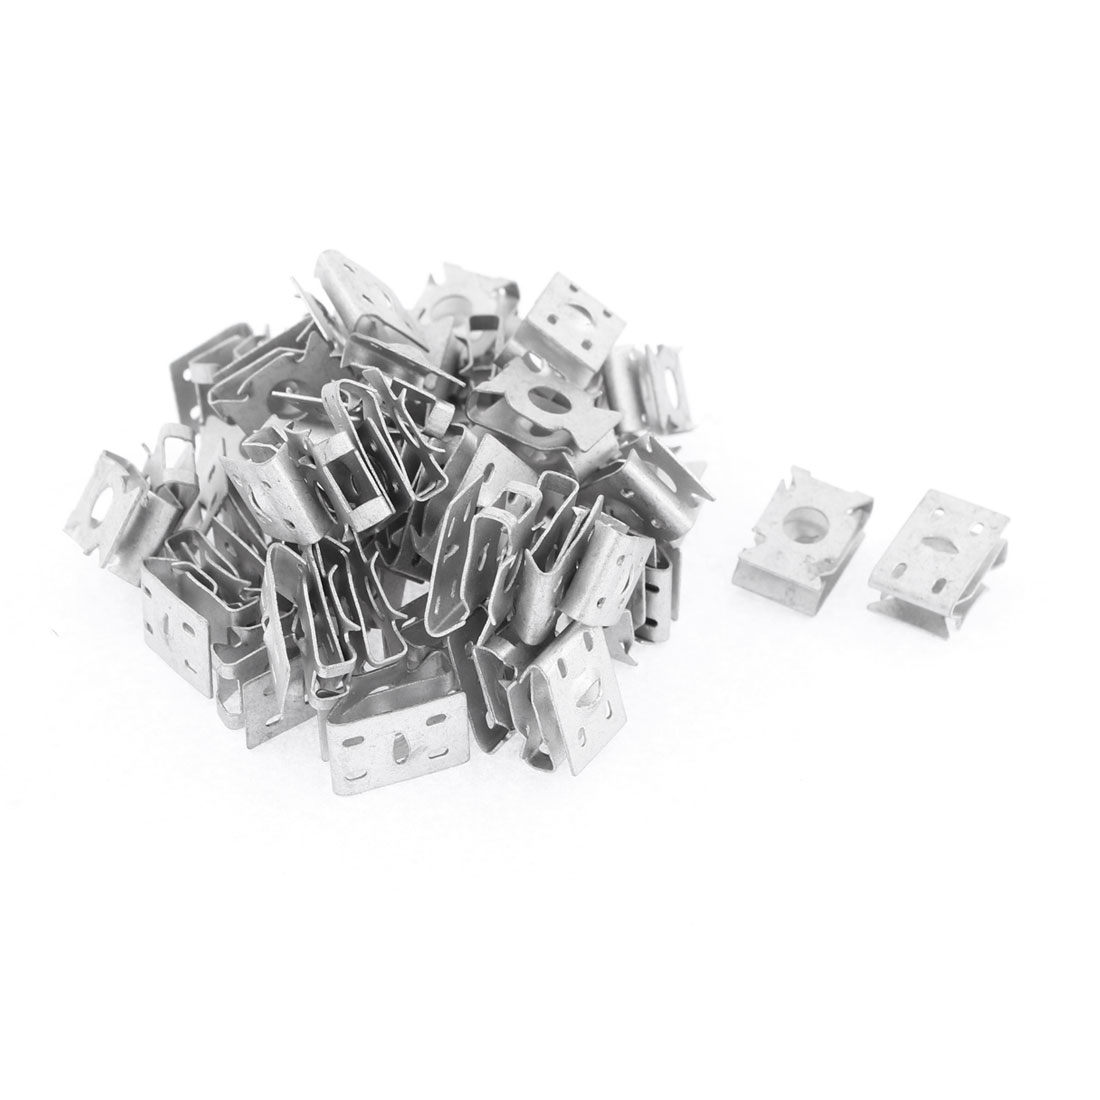 50Pcs Metal Retainer Clips for Car Dash License Plate